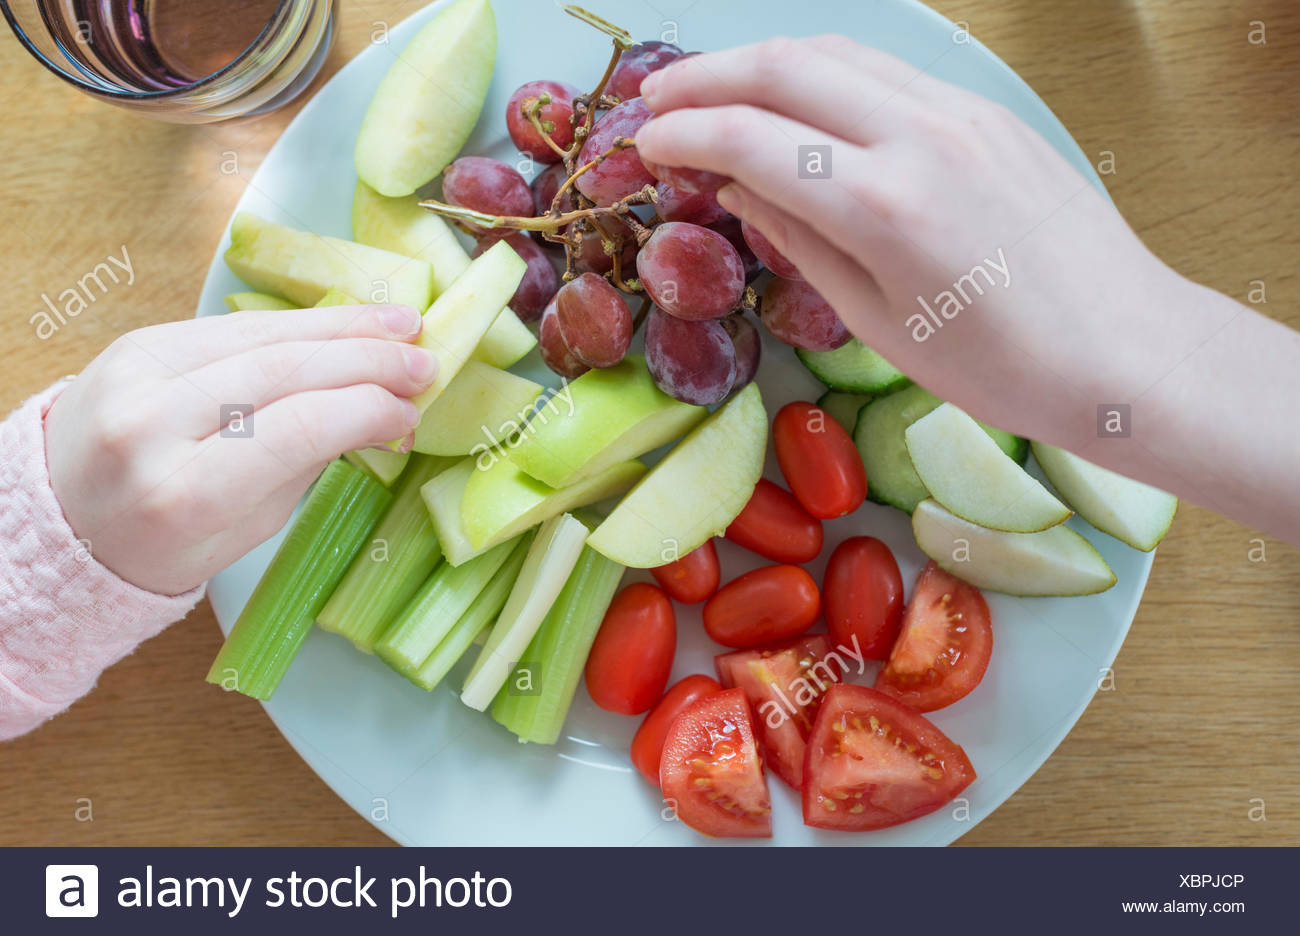 Hands taking fruit from a plate of snack food. - Stock Image